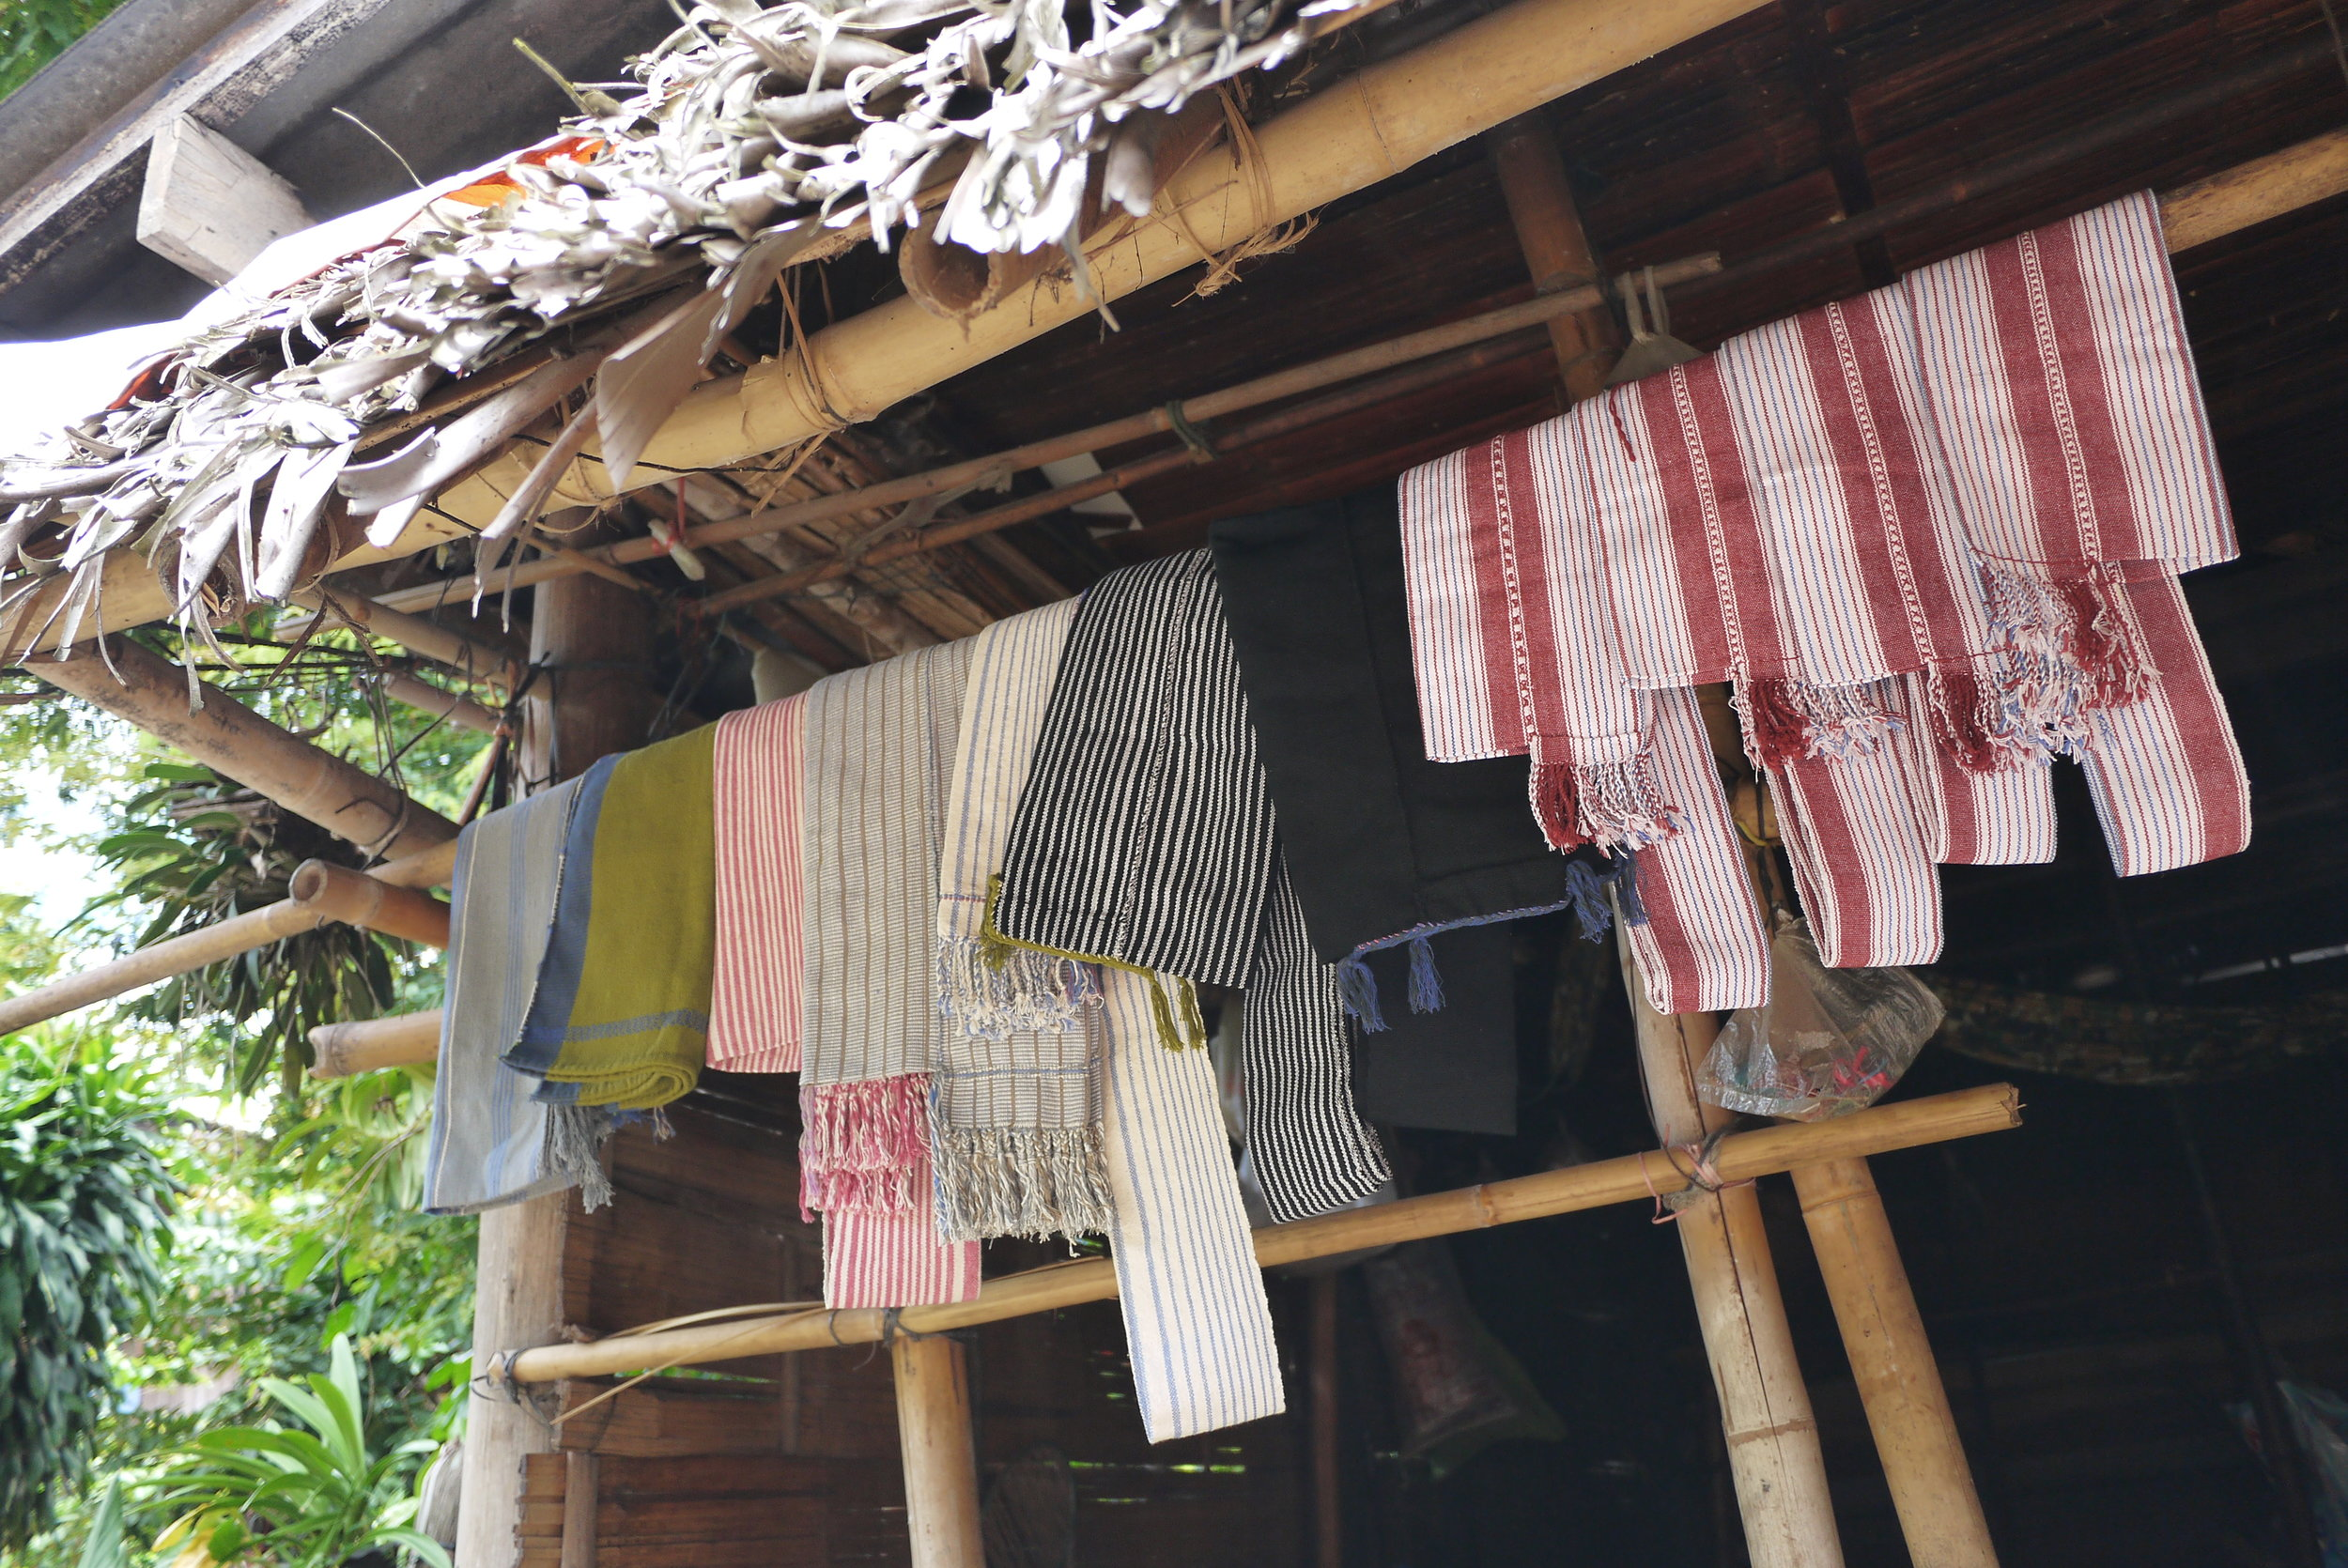 Cotton bags on display in a Karen village at Mae Takri National Park, Doi Saket District, Chiang Mai Province.